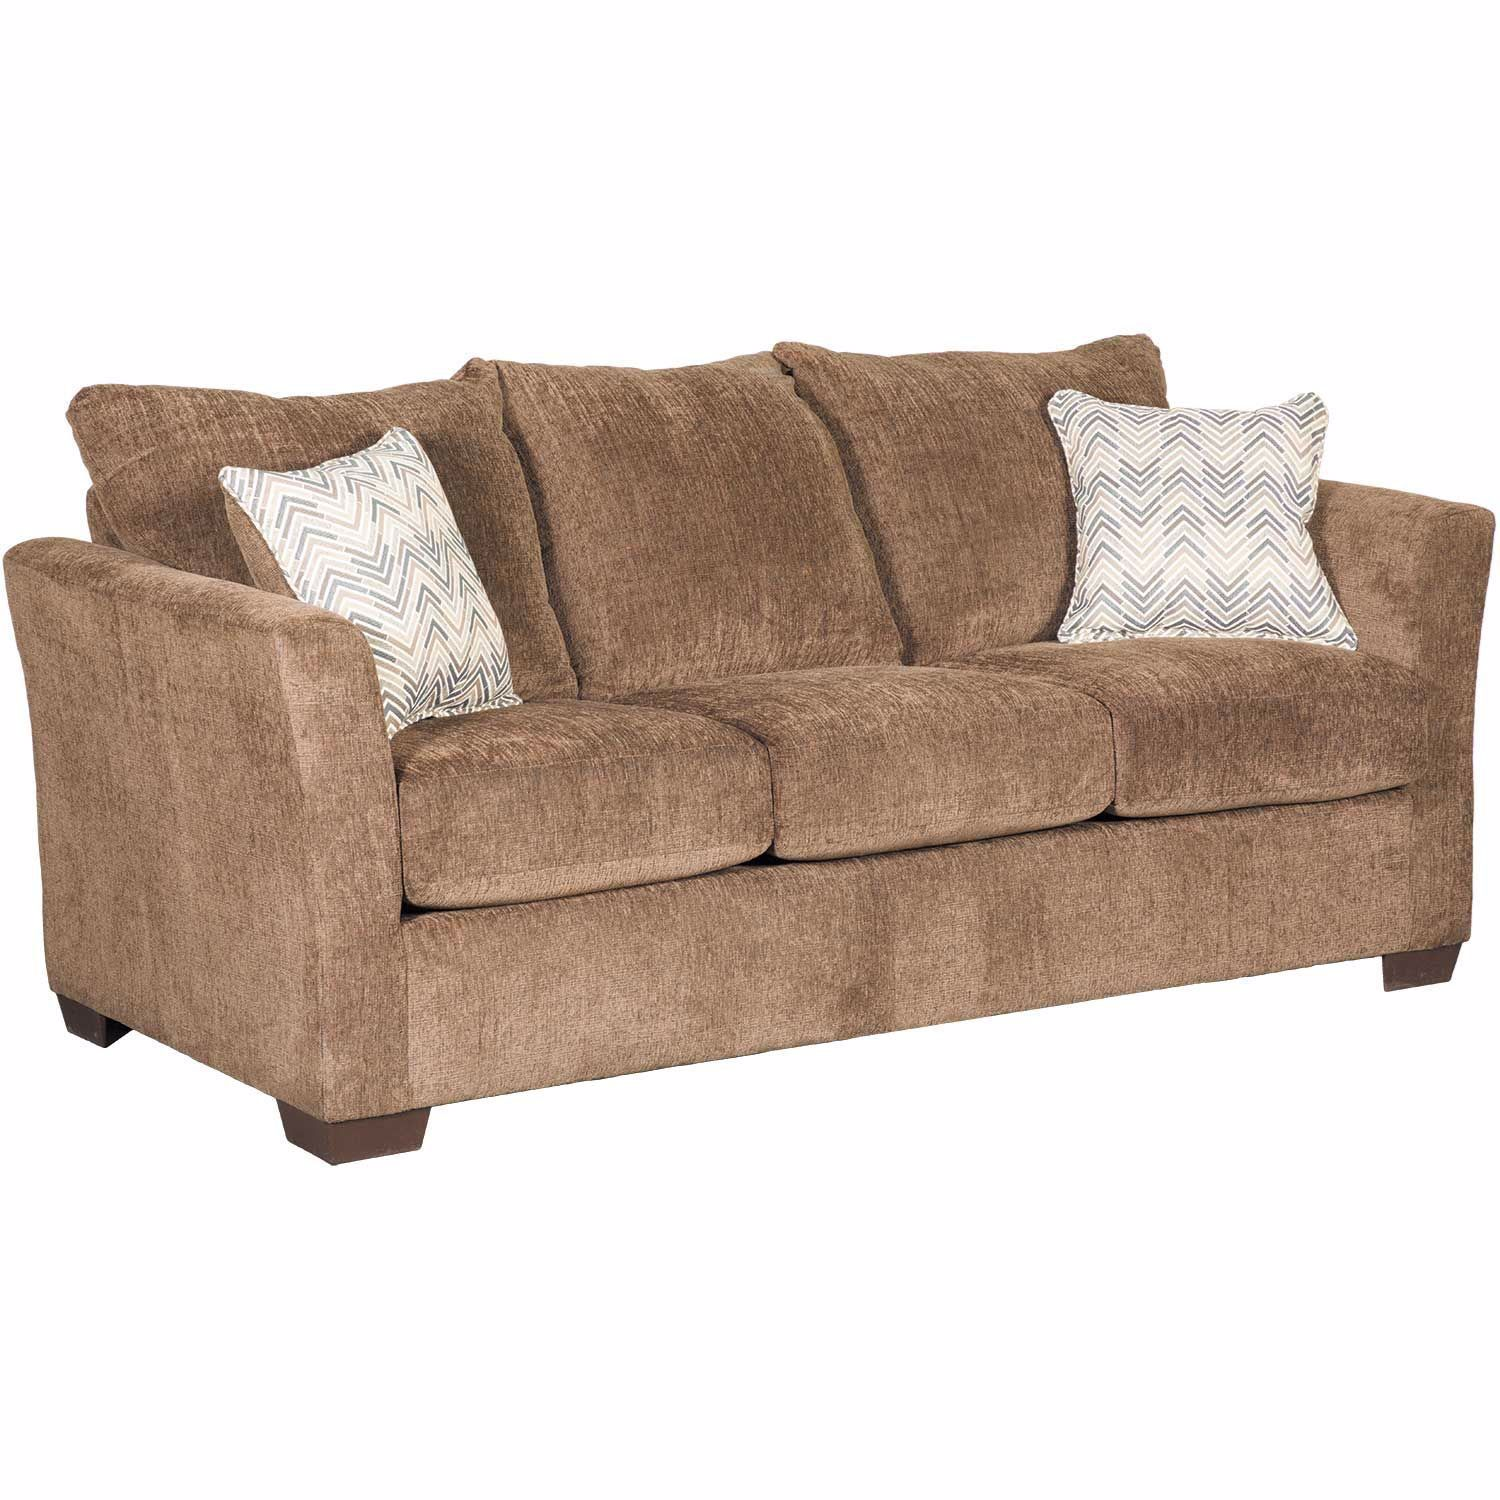 Picture of Webster Coffee Queen Sleeper with Memory Foam Mattress